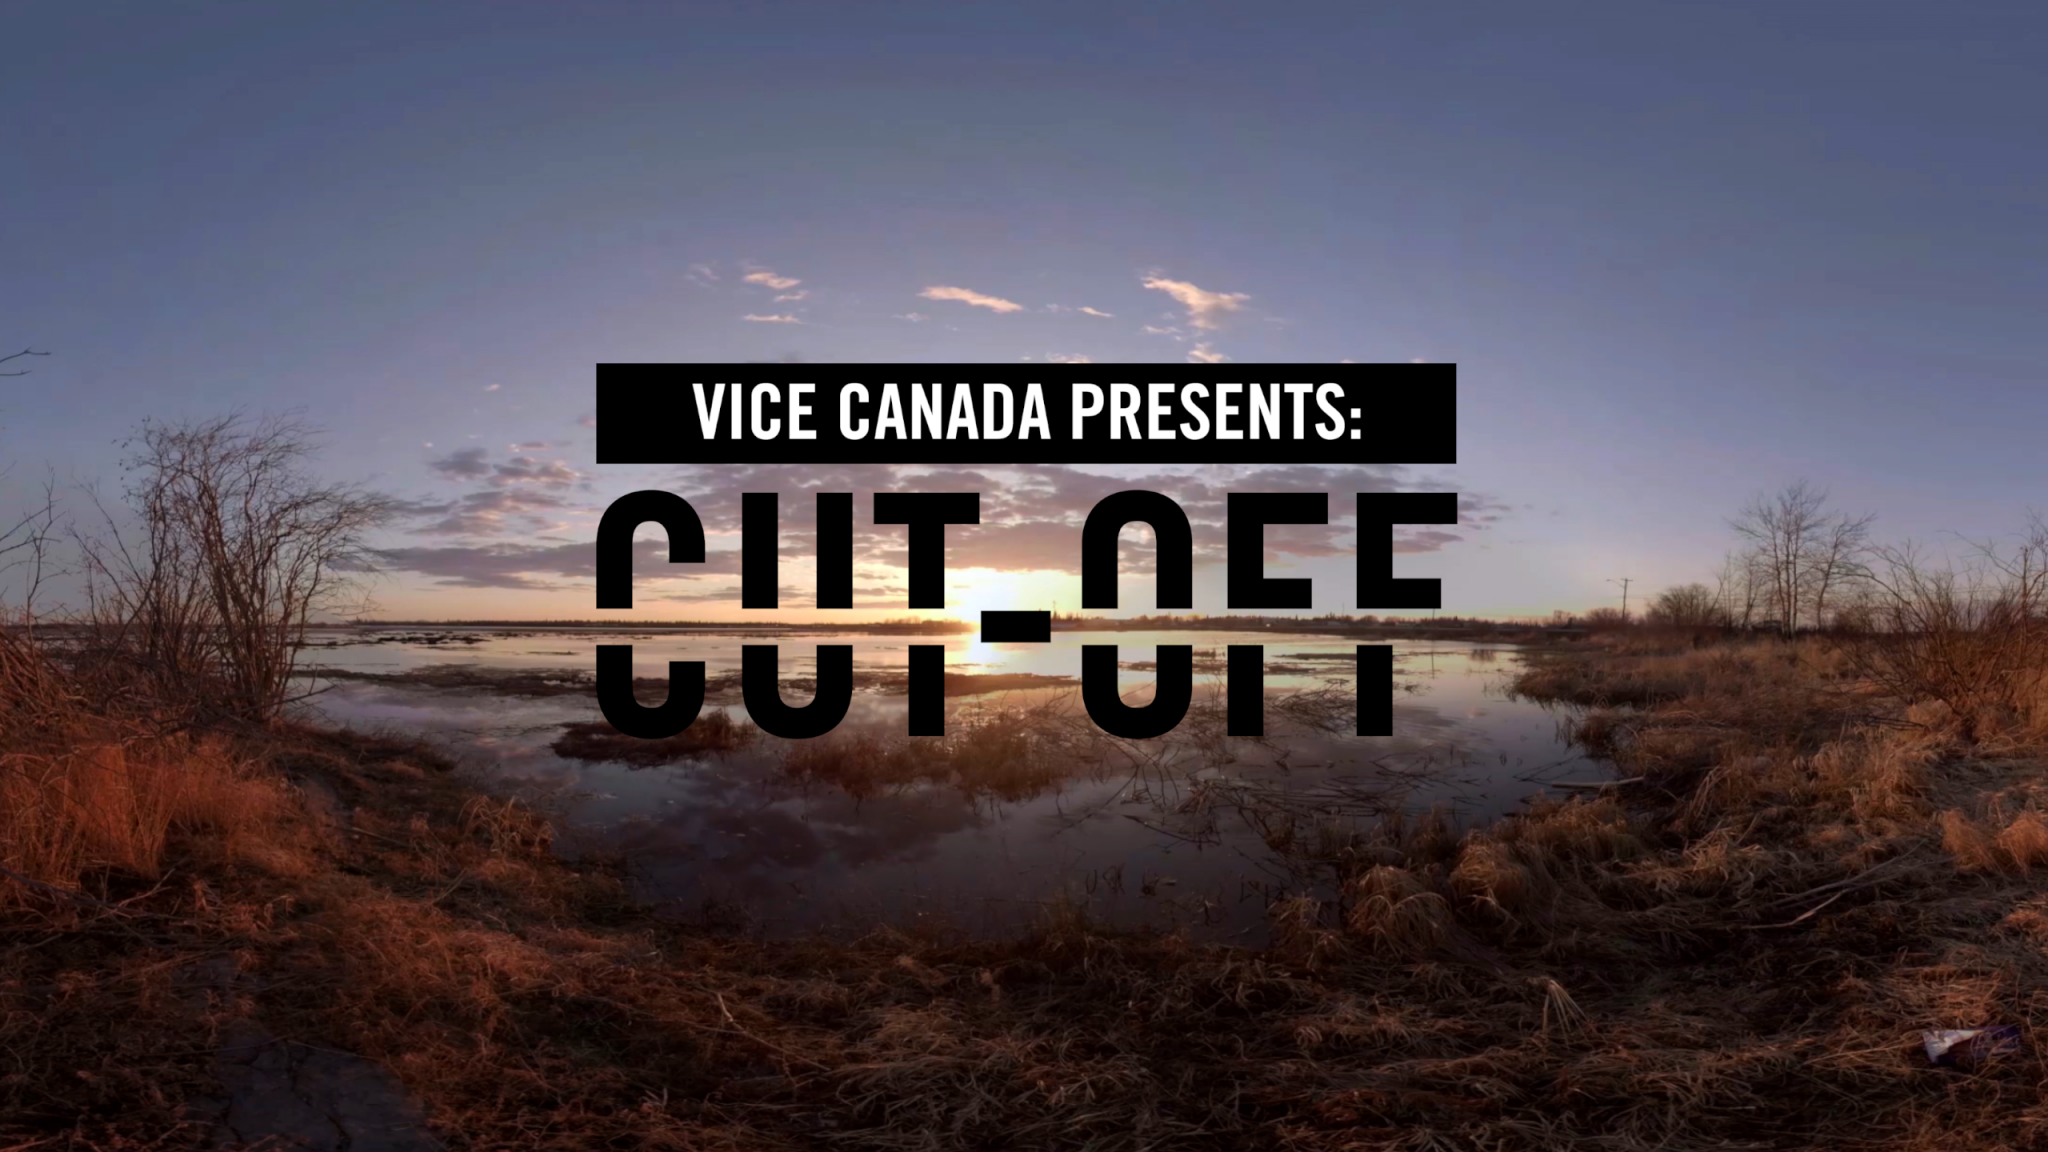 J.Lee Directs Justin Trudeau in VICE's CUT-OFF Documentary